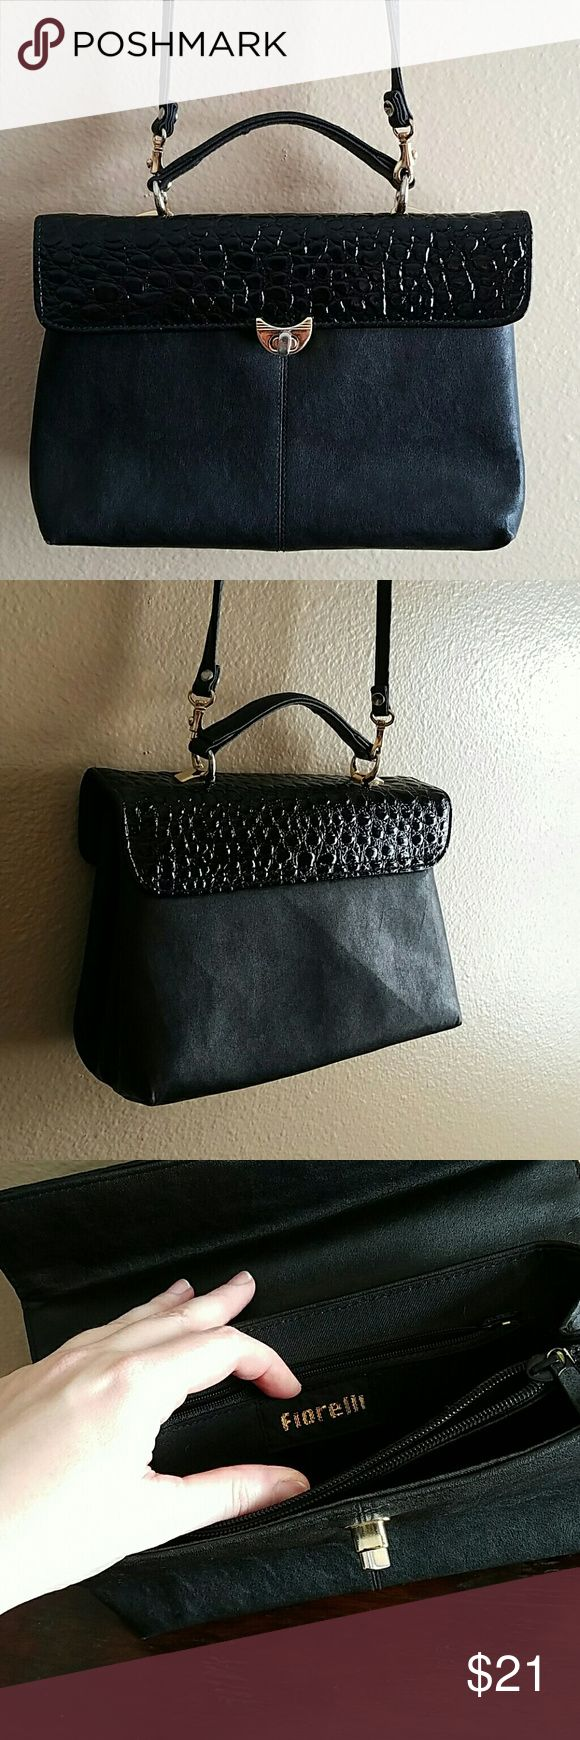 Vintage Fiorelli Handbag Excellent condition!  The gold hardware is starting to show a little wear...that is an easy fix for an overall great vintage bag. Has removable shoulder strap and several compartments for storage inside..truly a timeless classic. Fiorelli  Bags